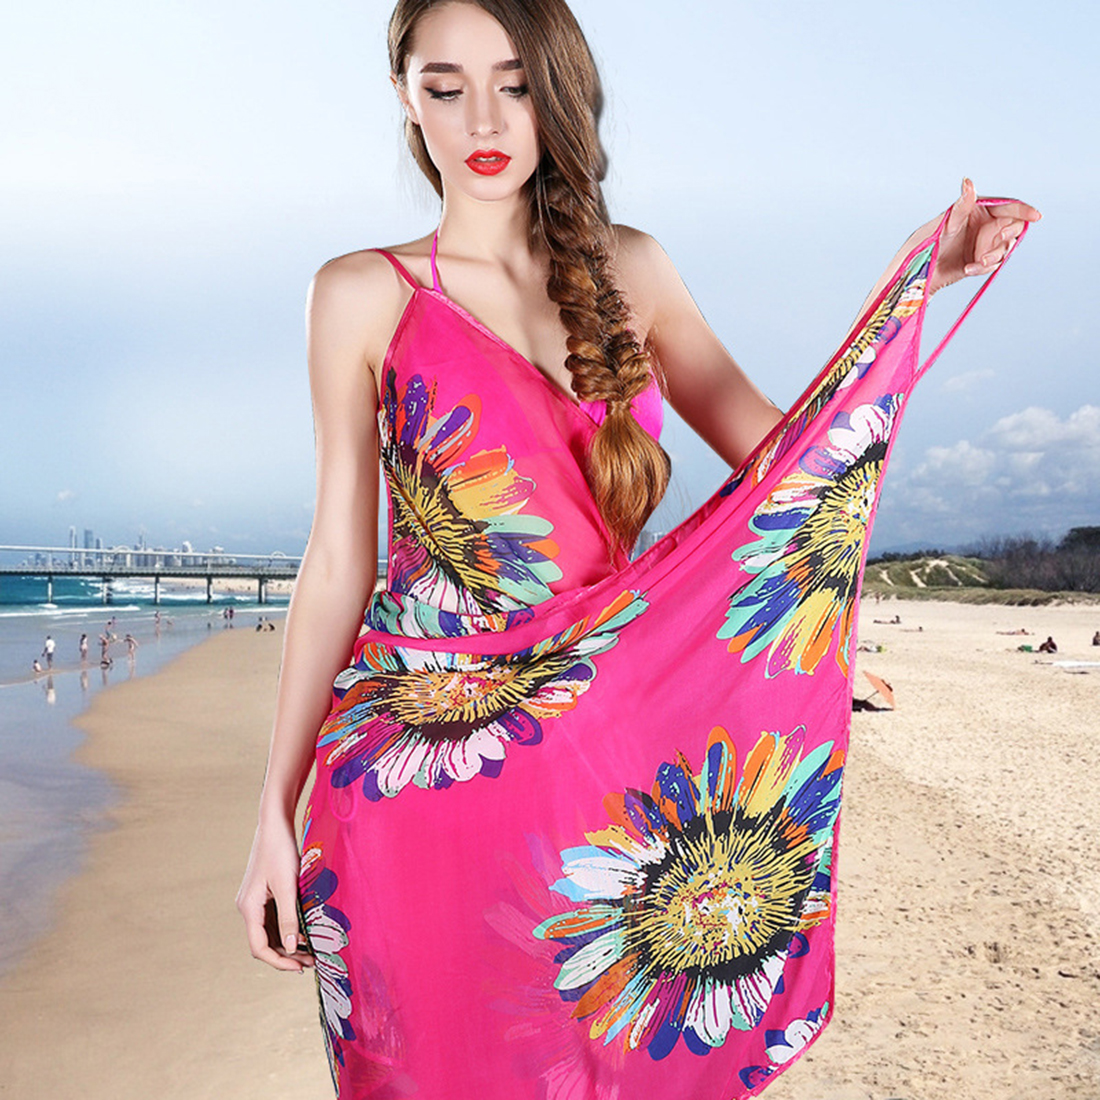 2018 Hot Sale Kvinnor Beach Dress Open-Back Badkläder Sexy Bikini Cover-ups Wrap Pareo Kjolar Handduk Flower